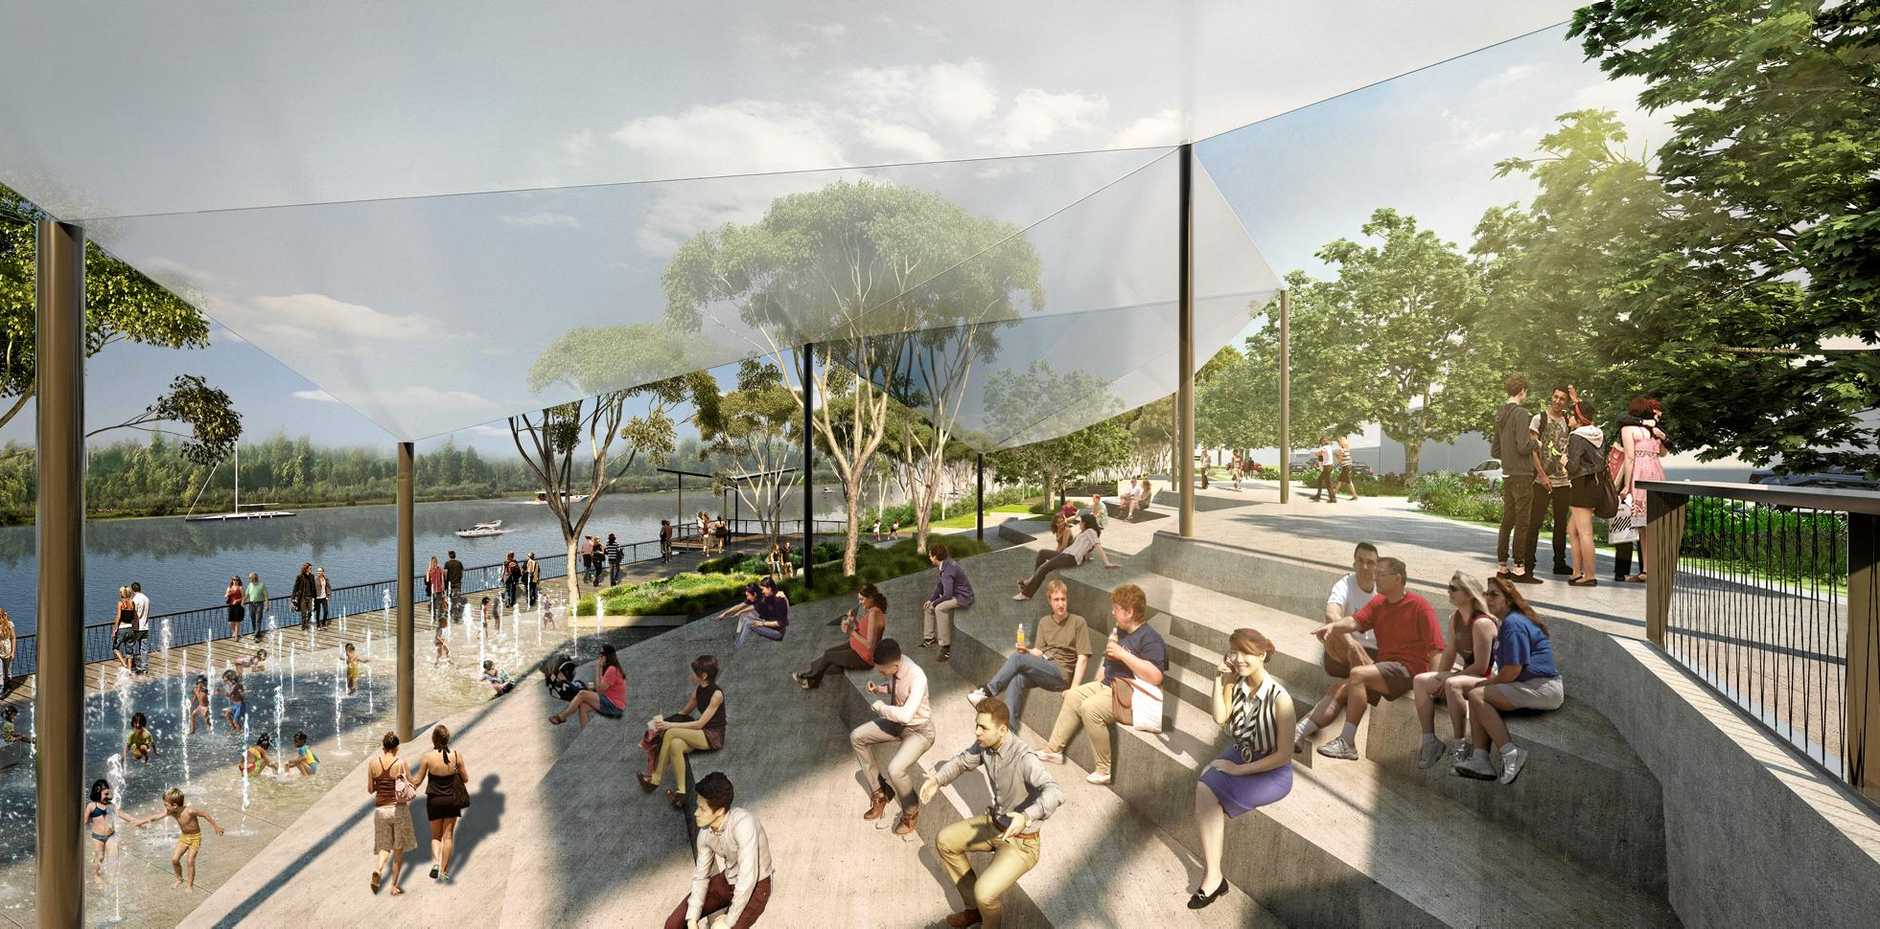 An artist's impression of the Rockhampton riverbank redevelopment.  Photo contributed.